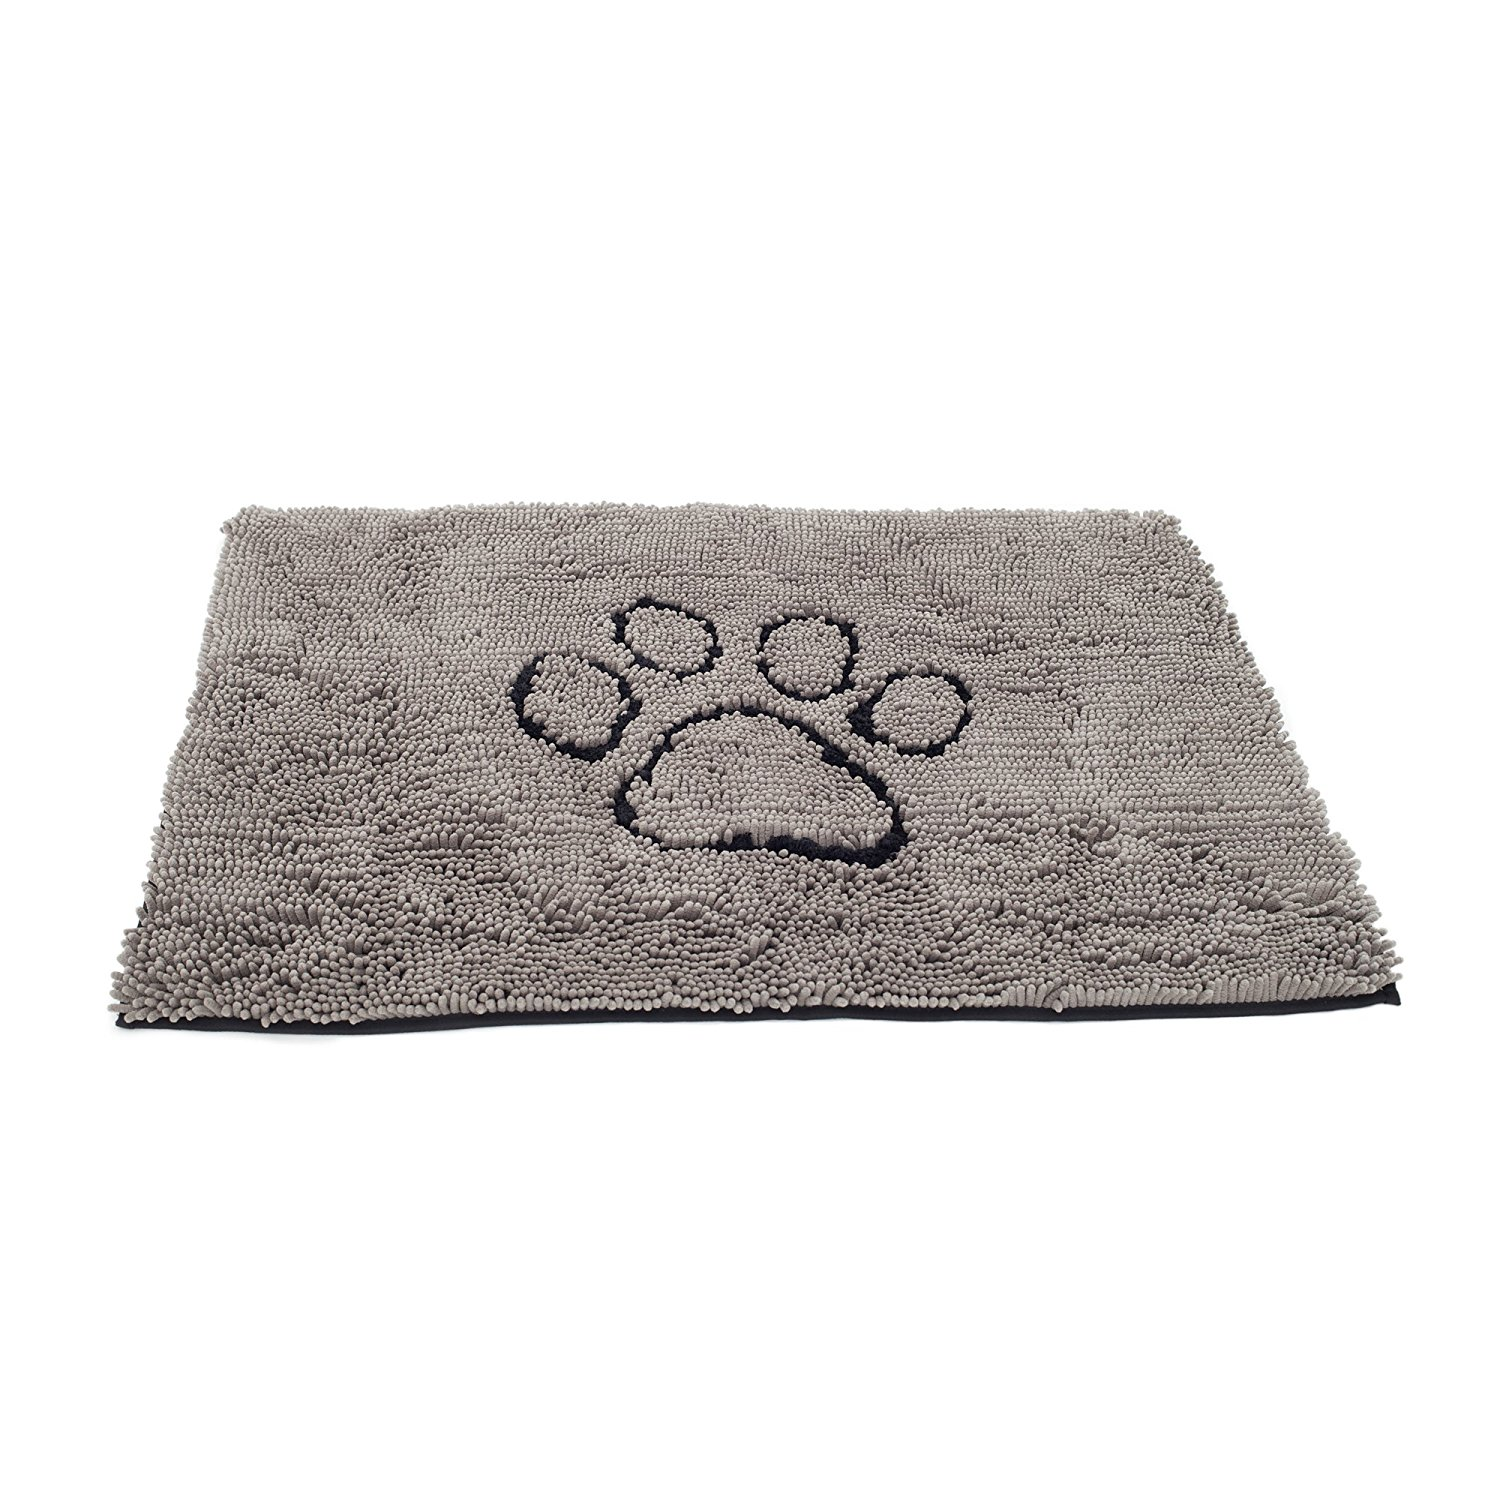 5 Best Doormat For Dogs To Make You A Dog Expert 2019